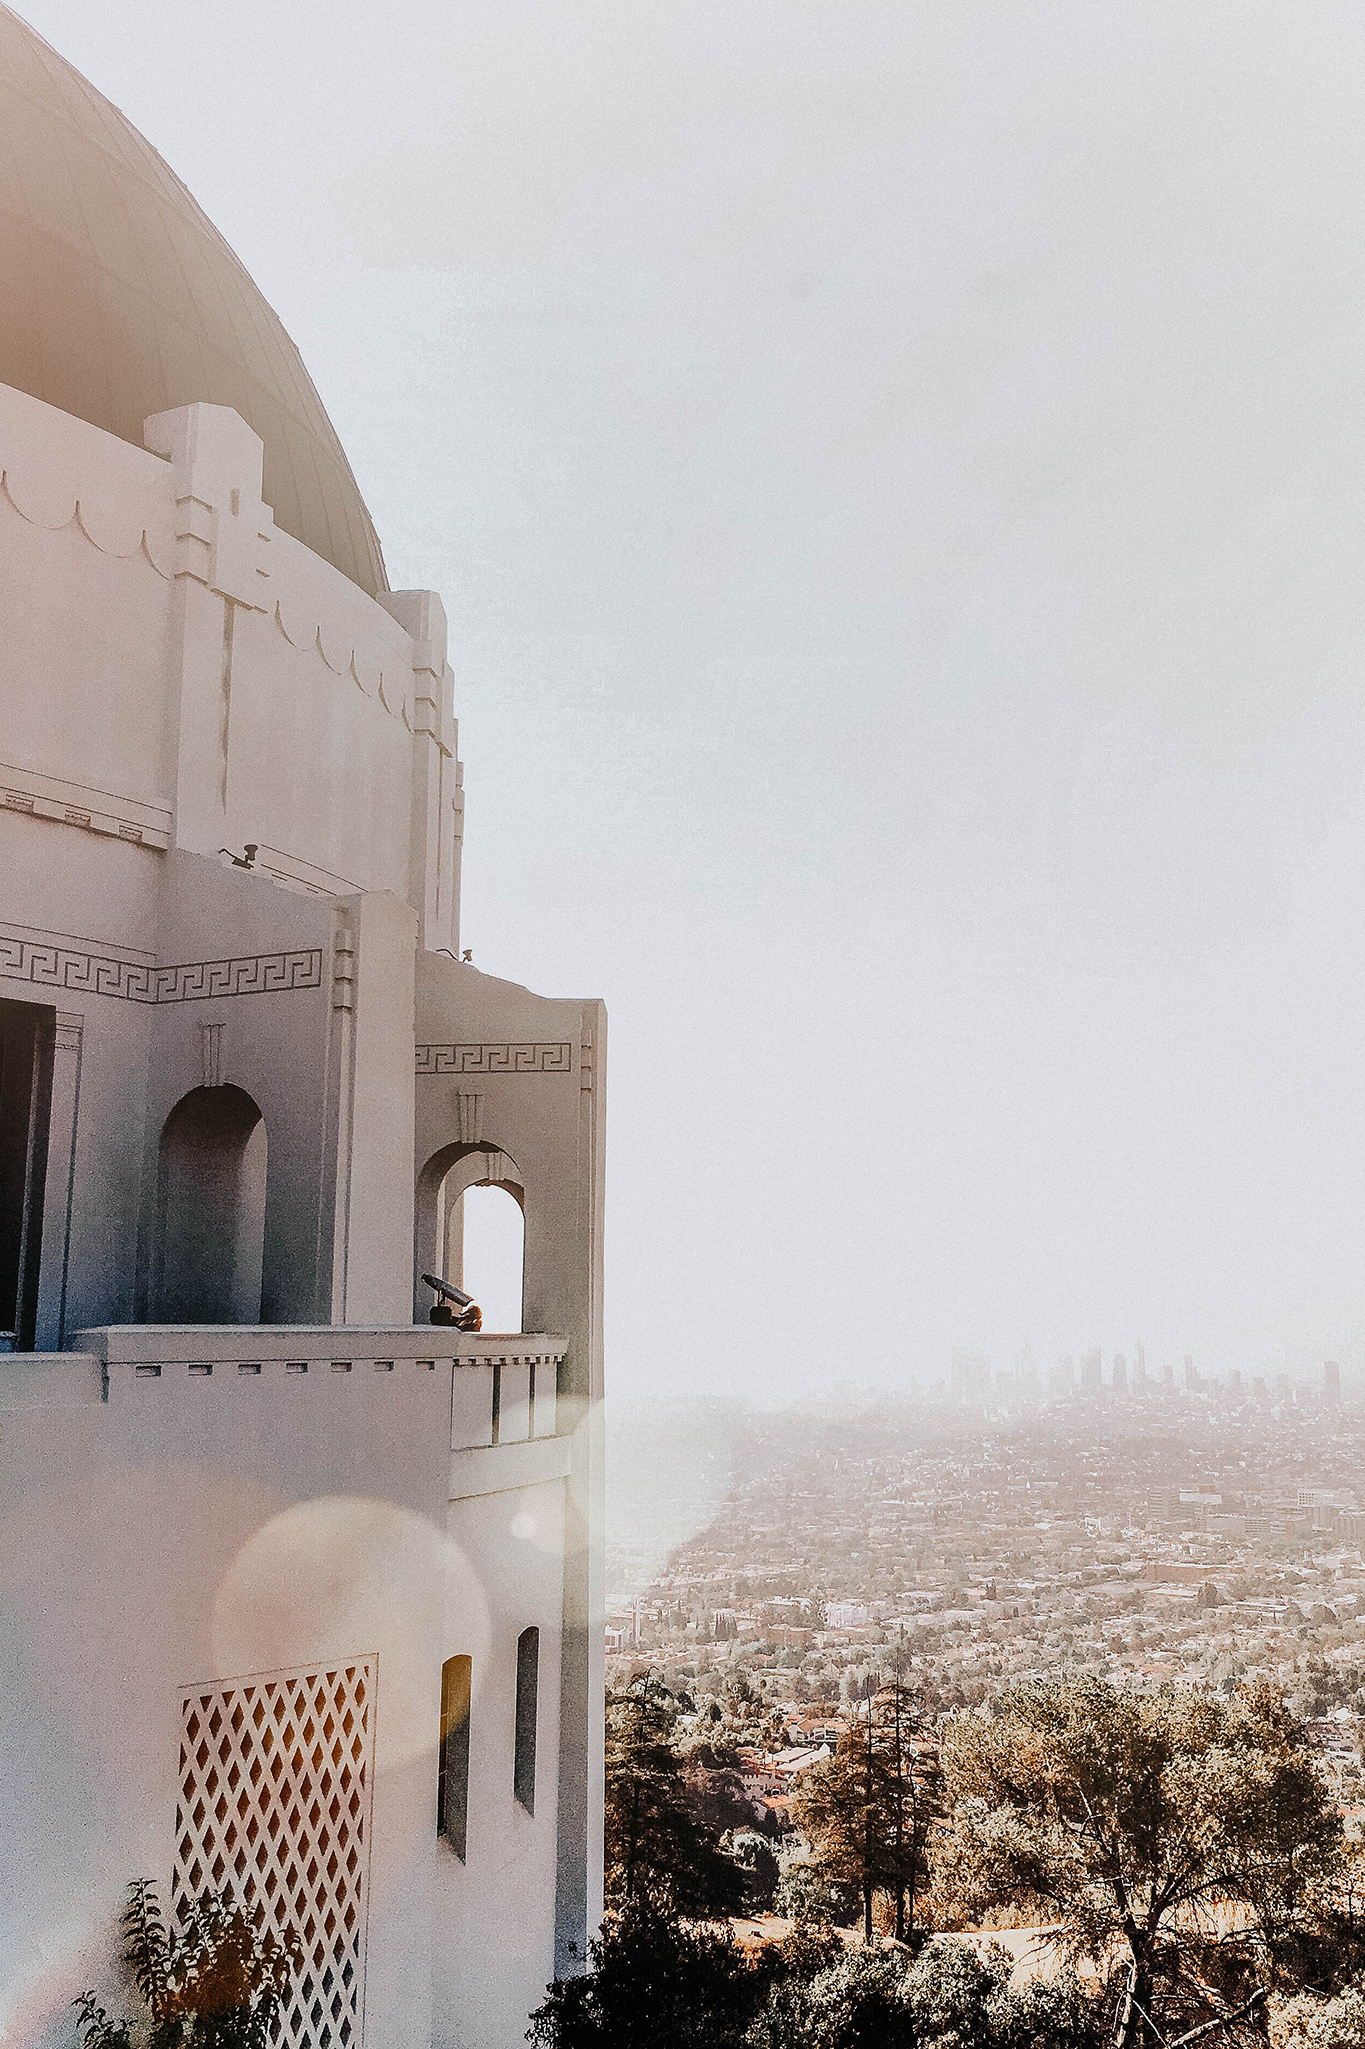 THE FIRST TIMERS GUIDE TO LOS ANGELES